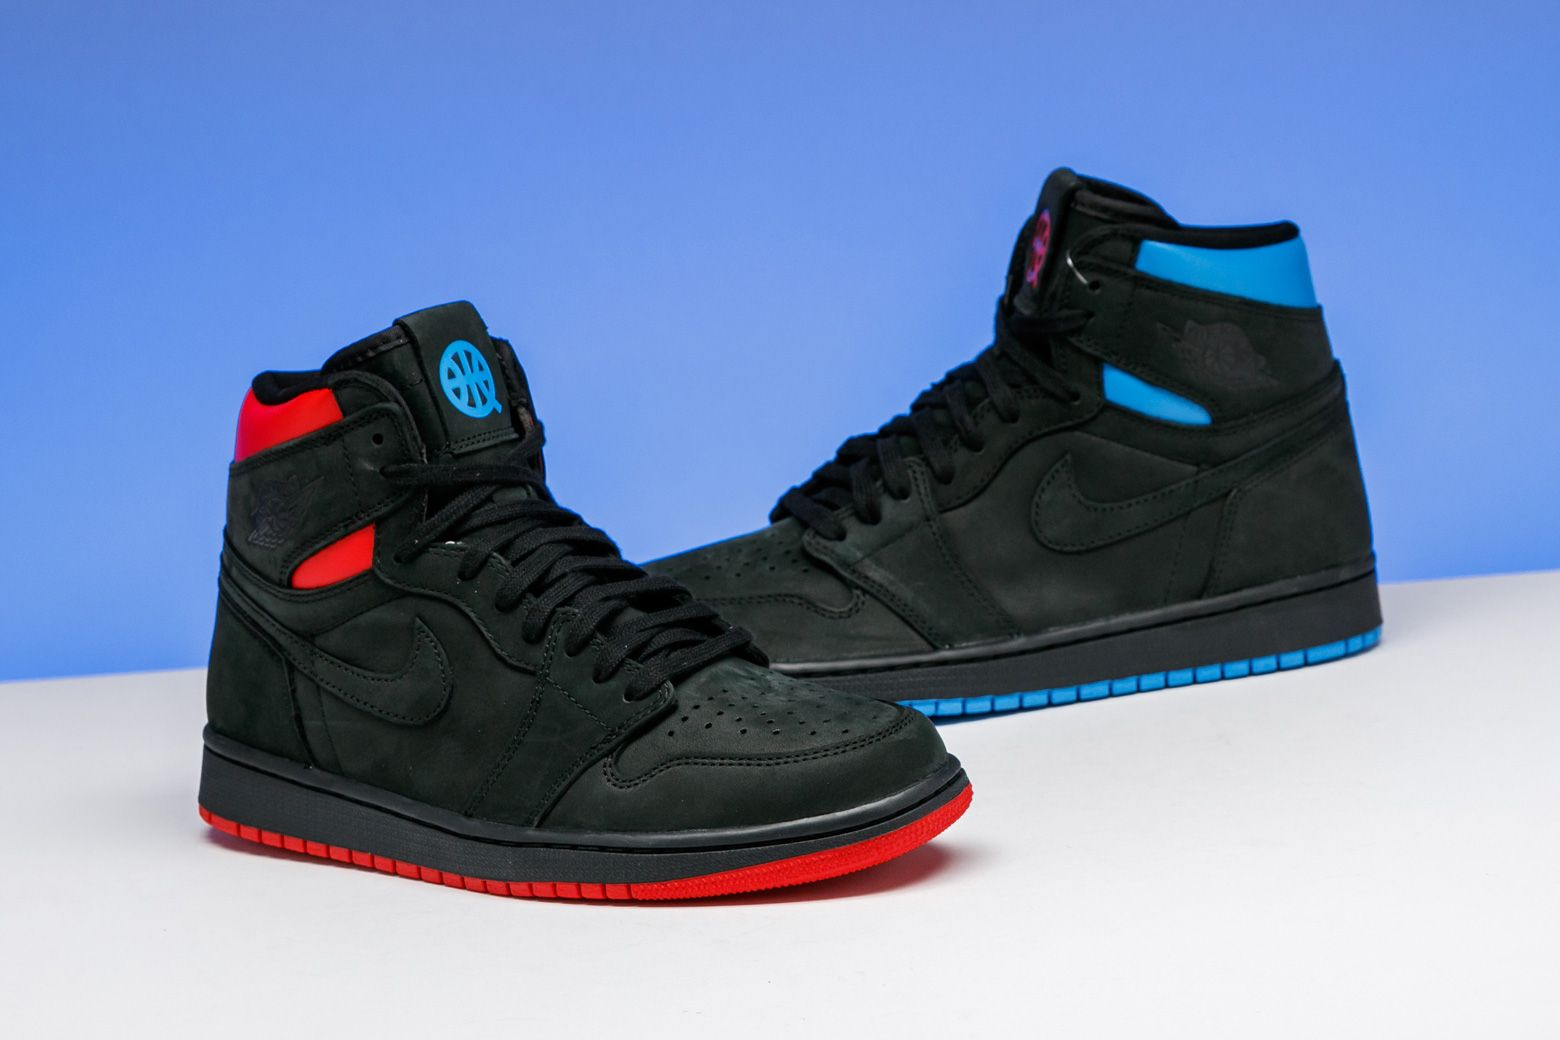 b7aa9b423002 The French national flag inspired this celebratory Quai 54 edition Air  Jordan 1 High Retro.